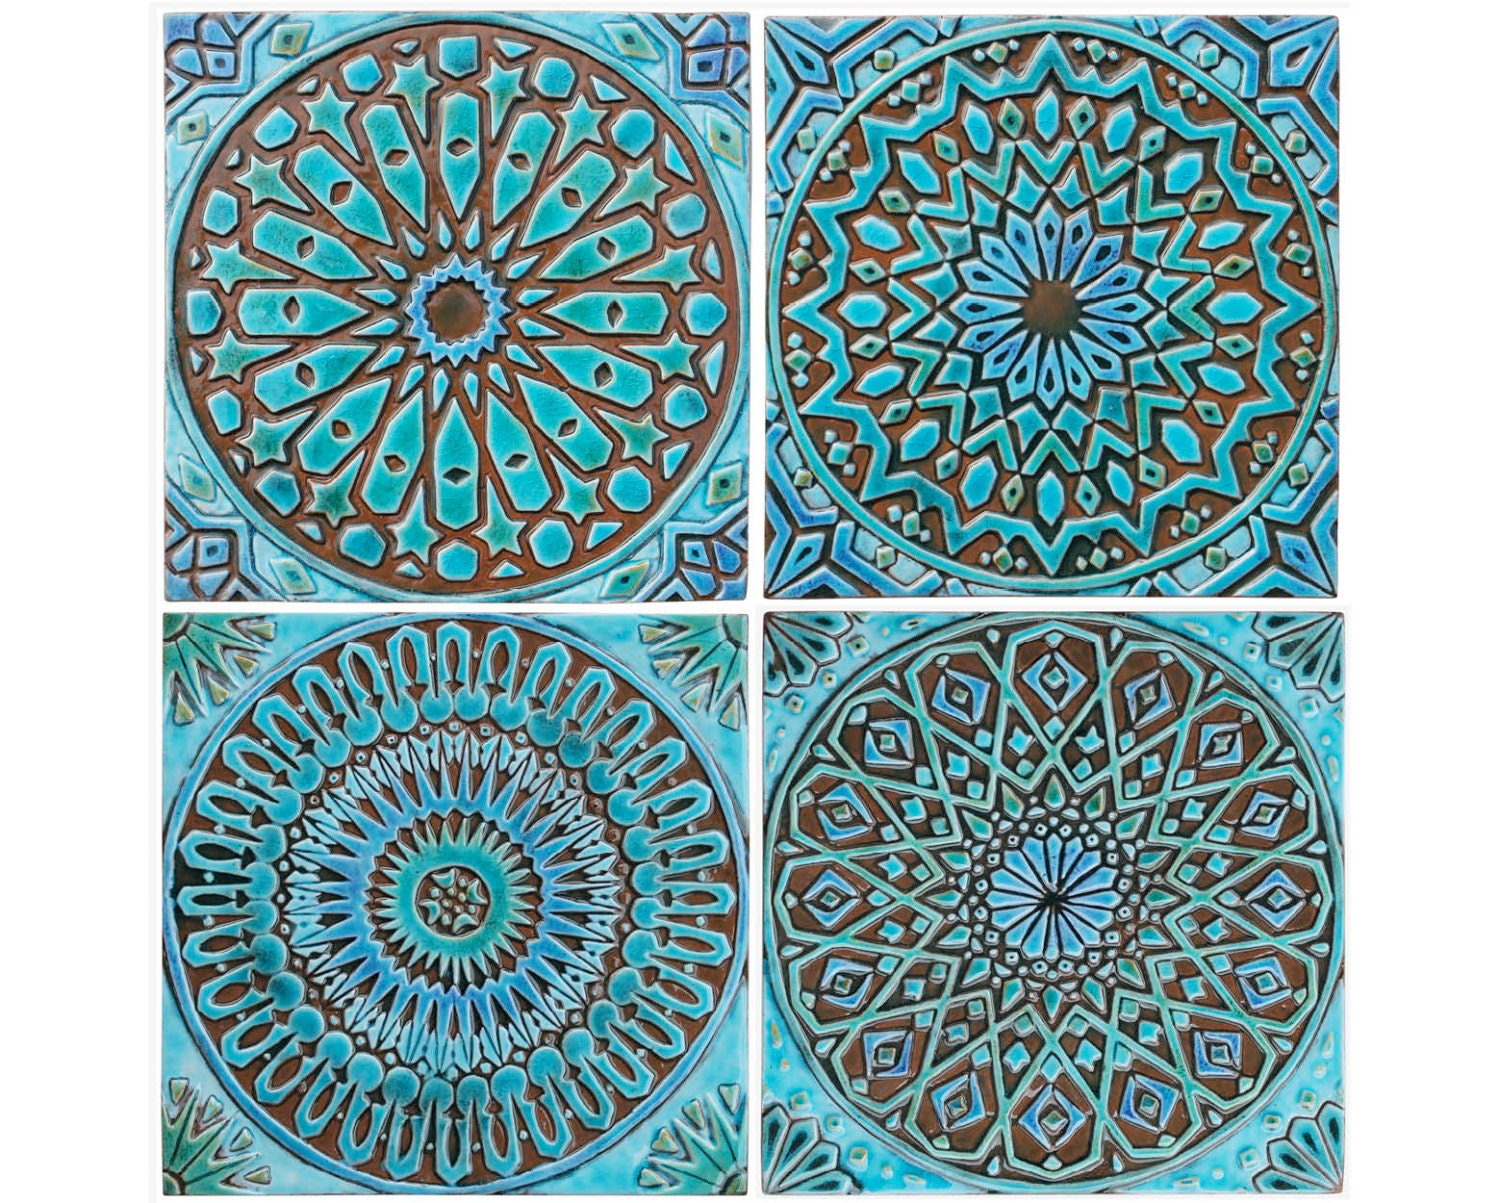 4 Moroccan Wall Hangings Ceramic Tiles Wall Decor